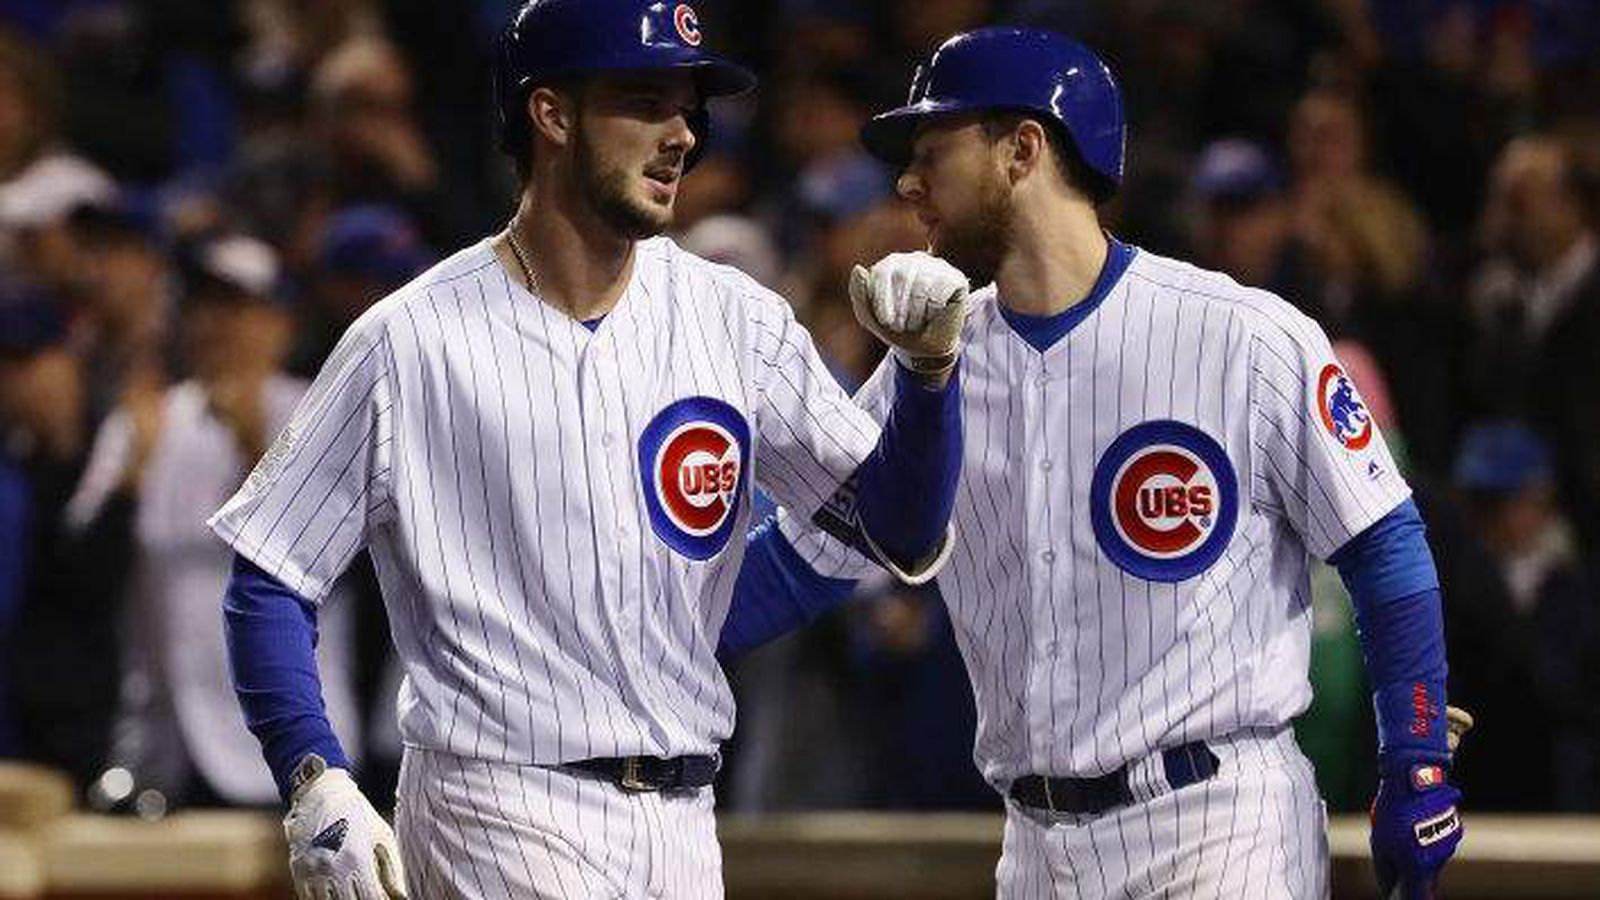 Cubs' young slugger Bryant takes hitting advice from another era